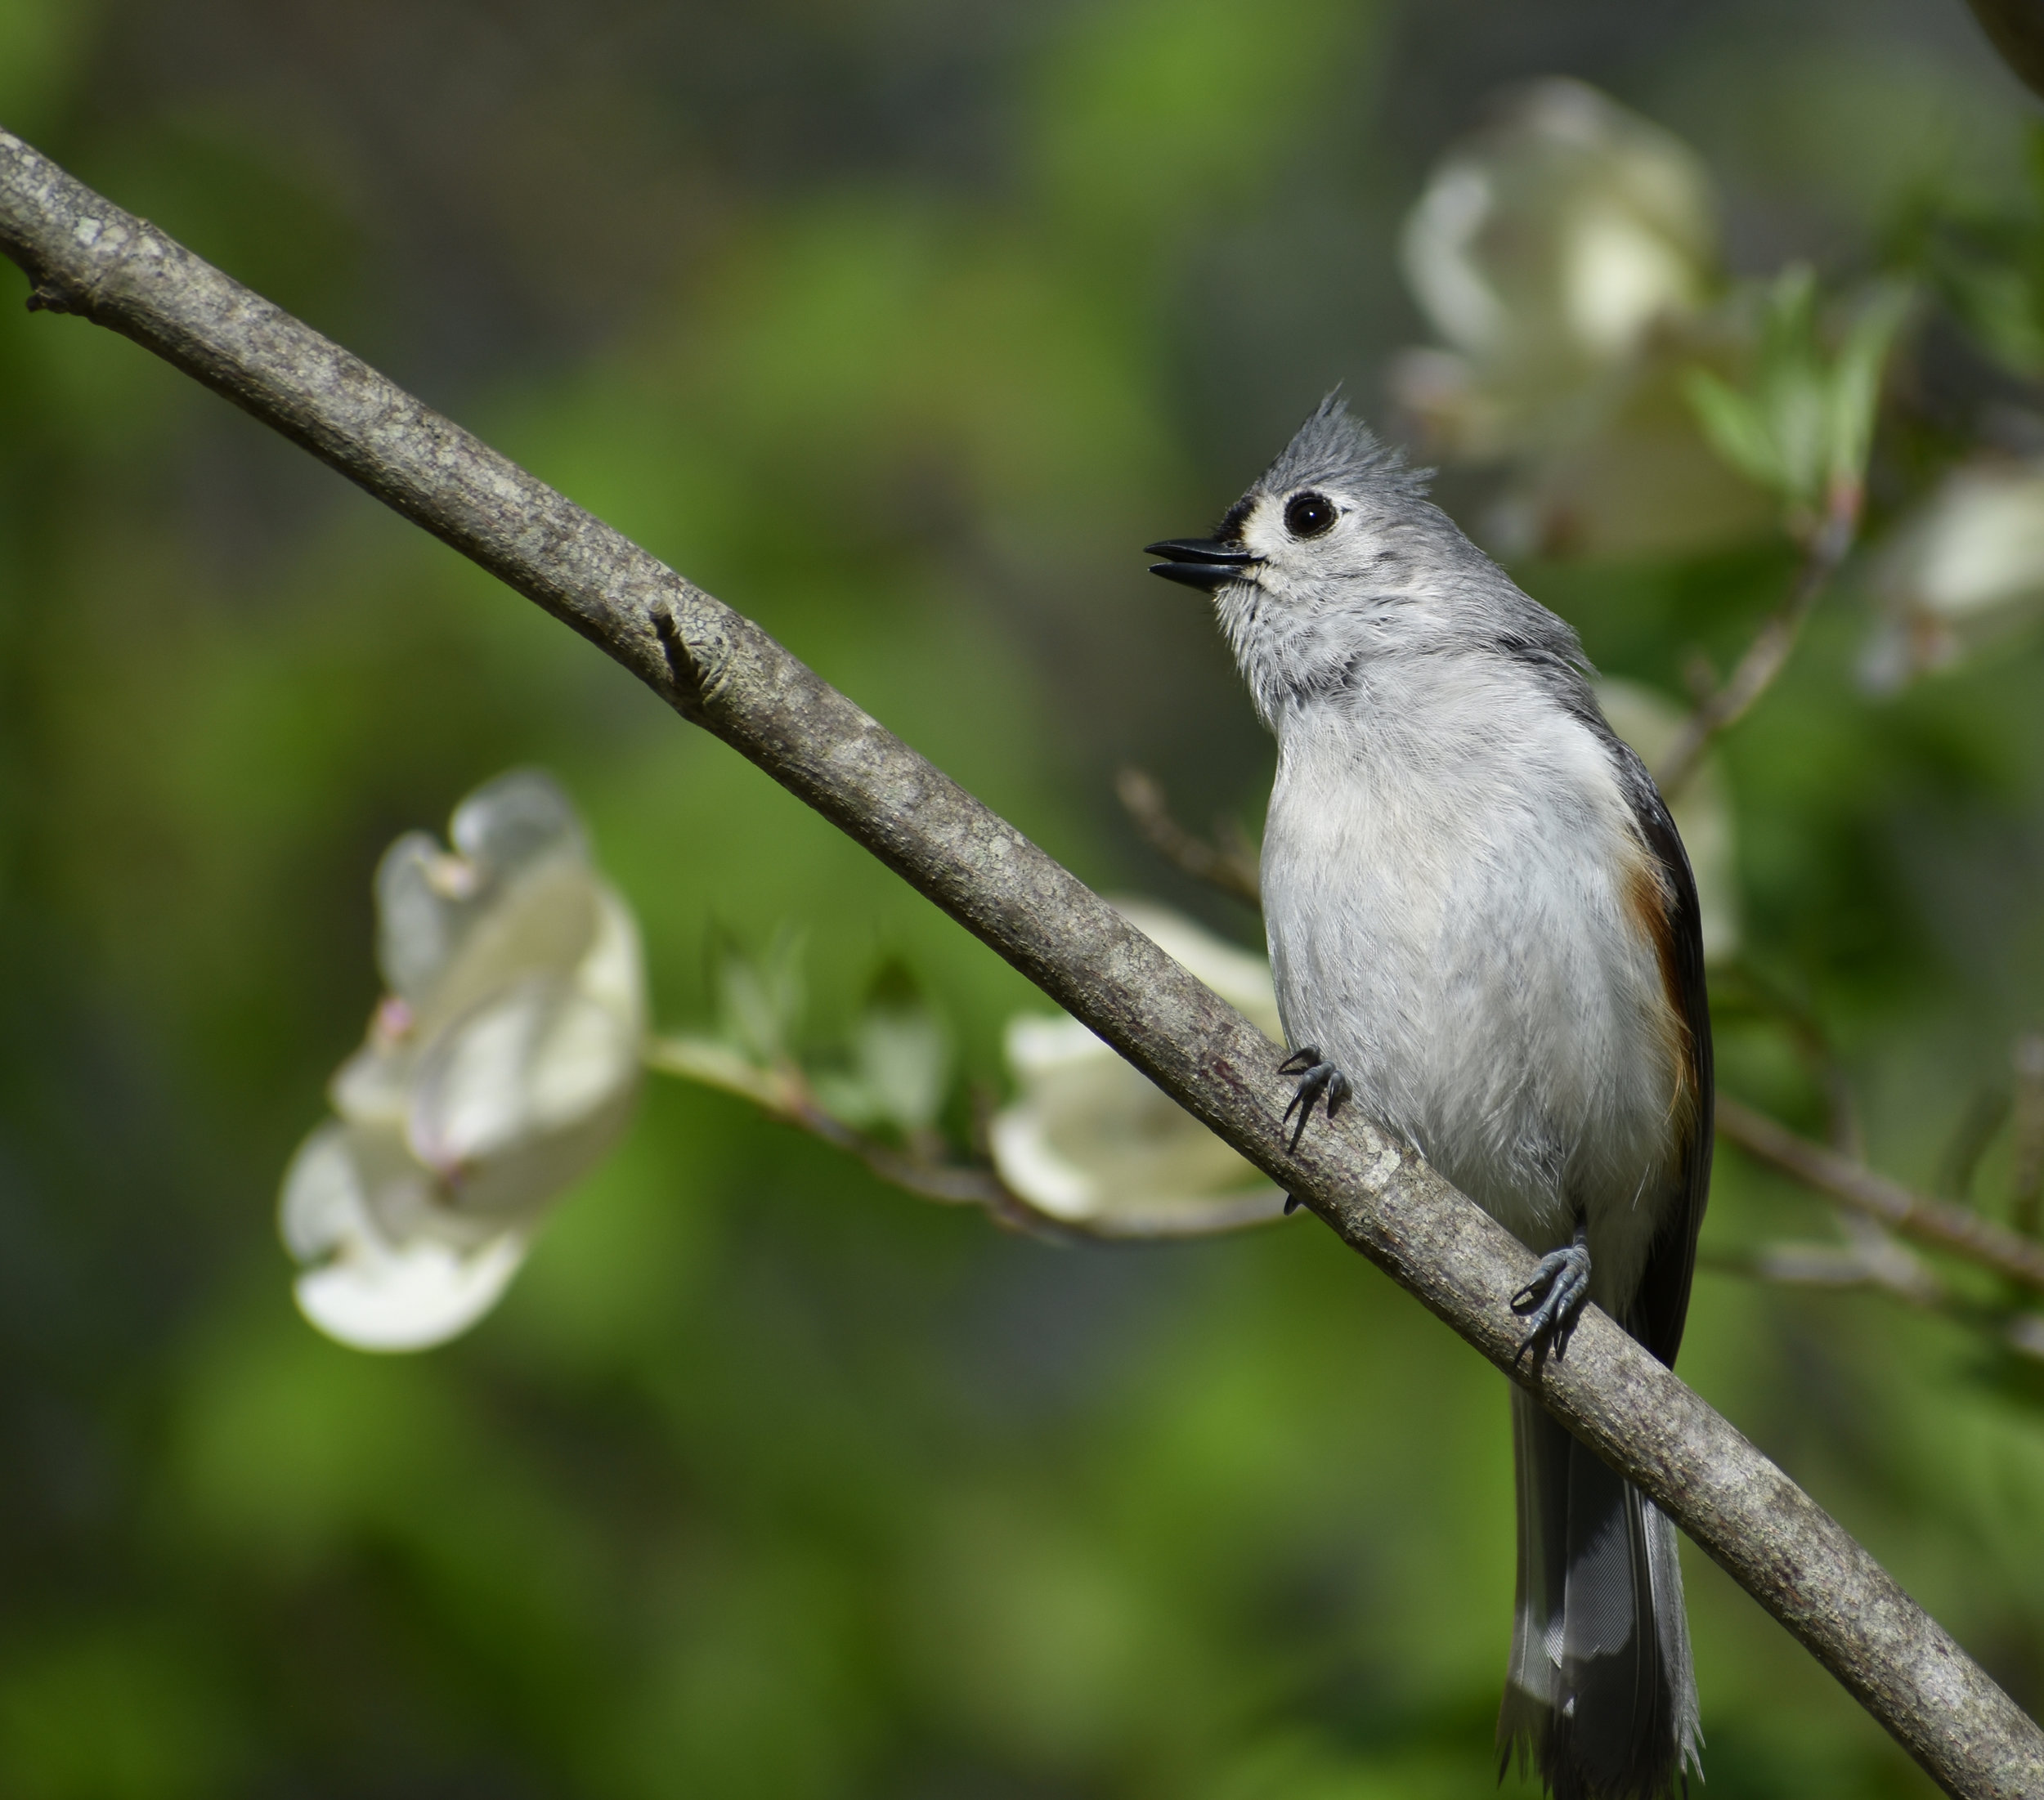 Bird Photography Background: Tufted Titmouse